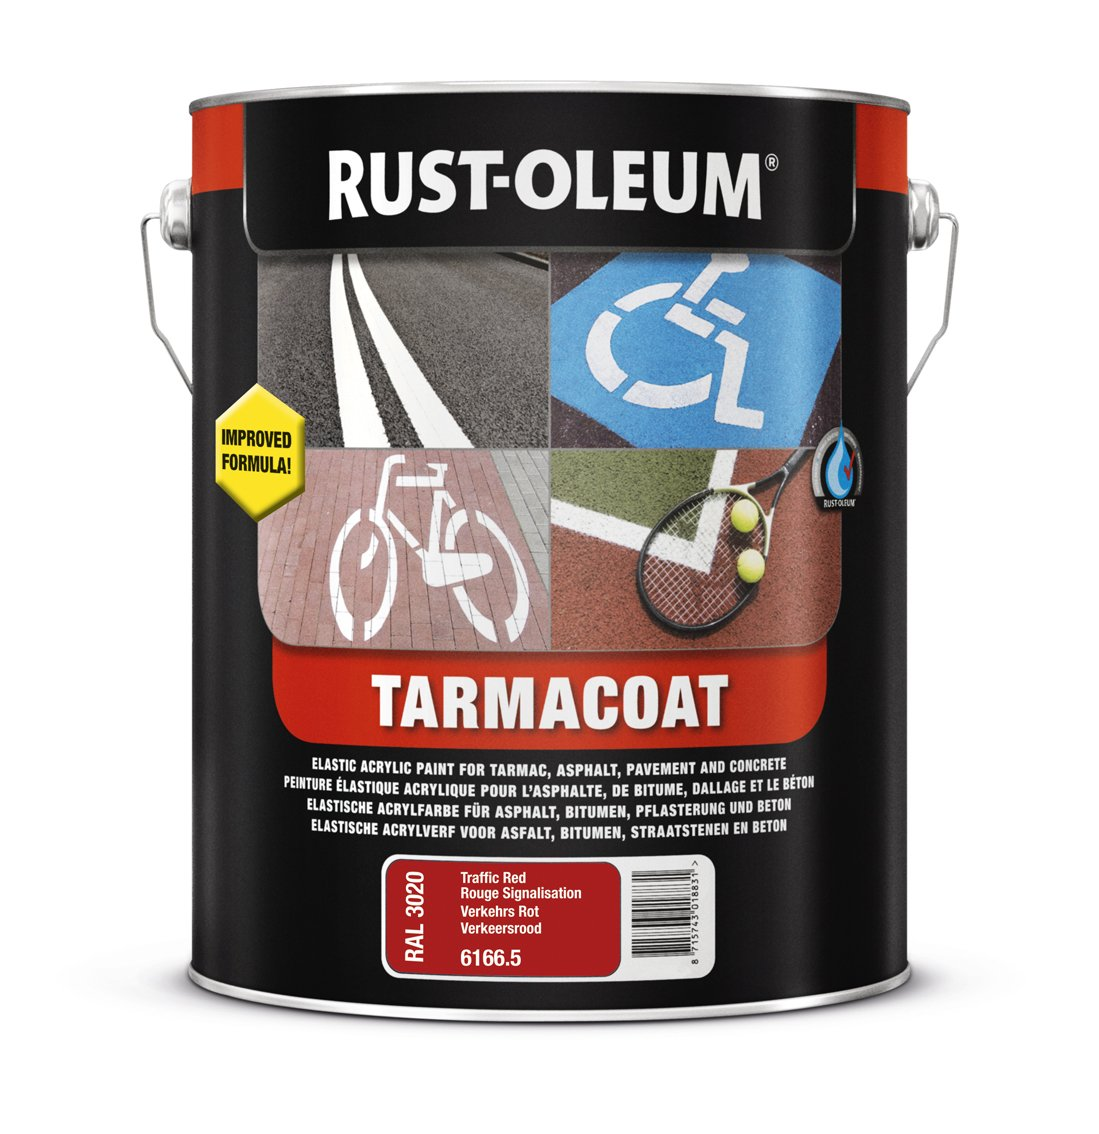 RUST-OLEUM 6169.5 Tarmacoat, Multi-Surface Floor Paint That Dries In 1 Hour!, English red